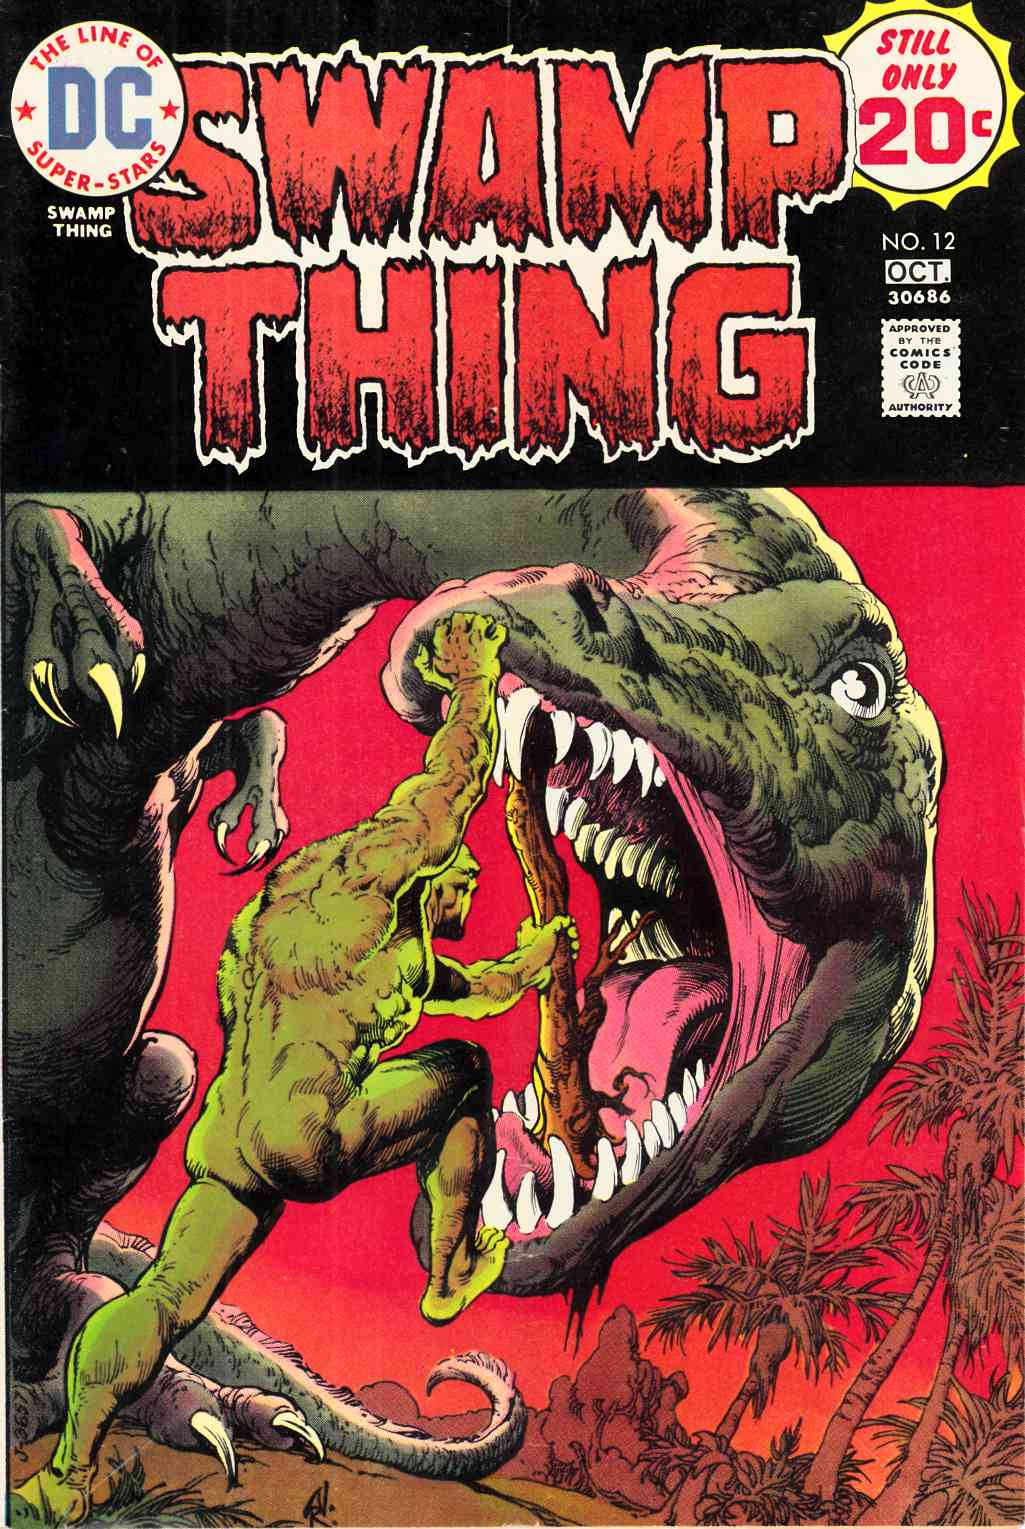 Swamp Thing #12 Very Good (4.0) [DC Comic] THUMBNAIL